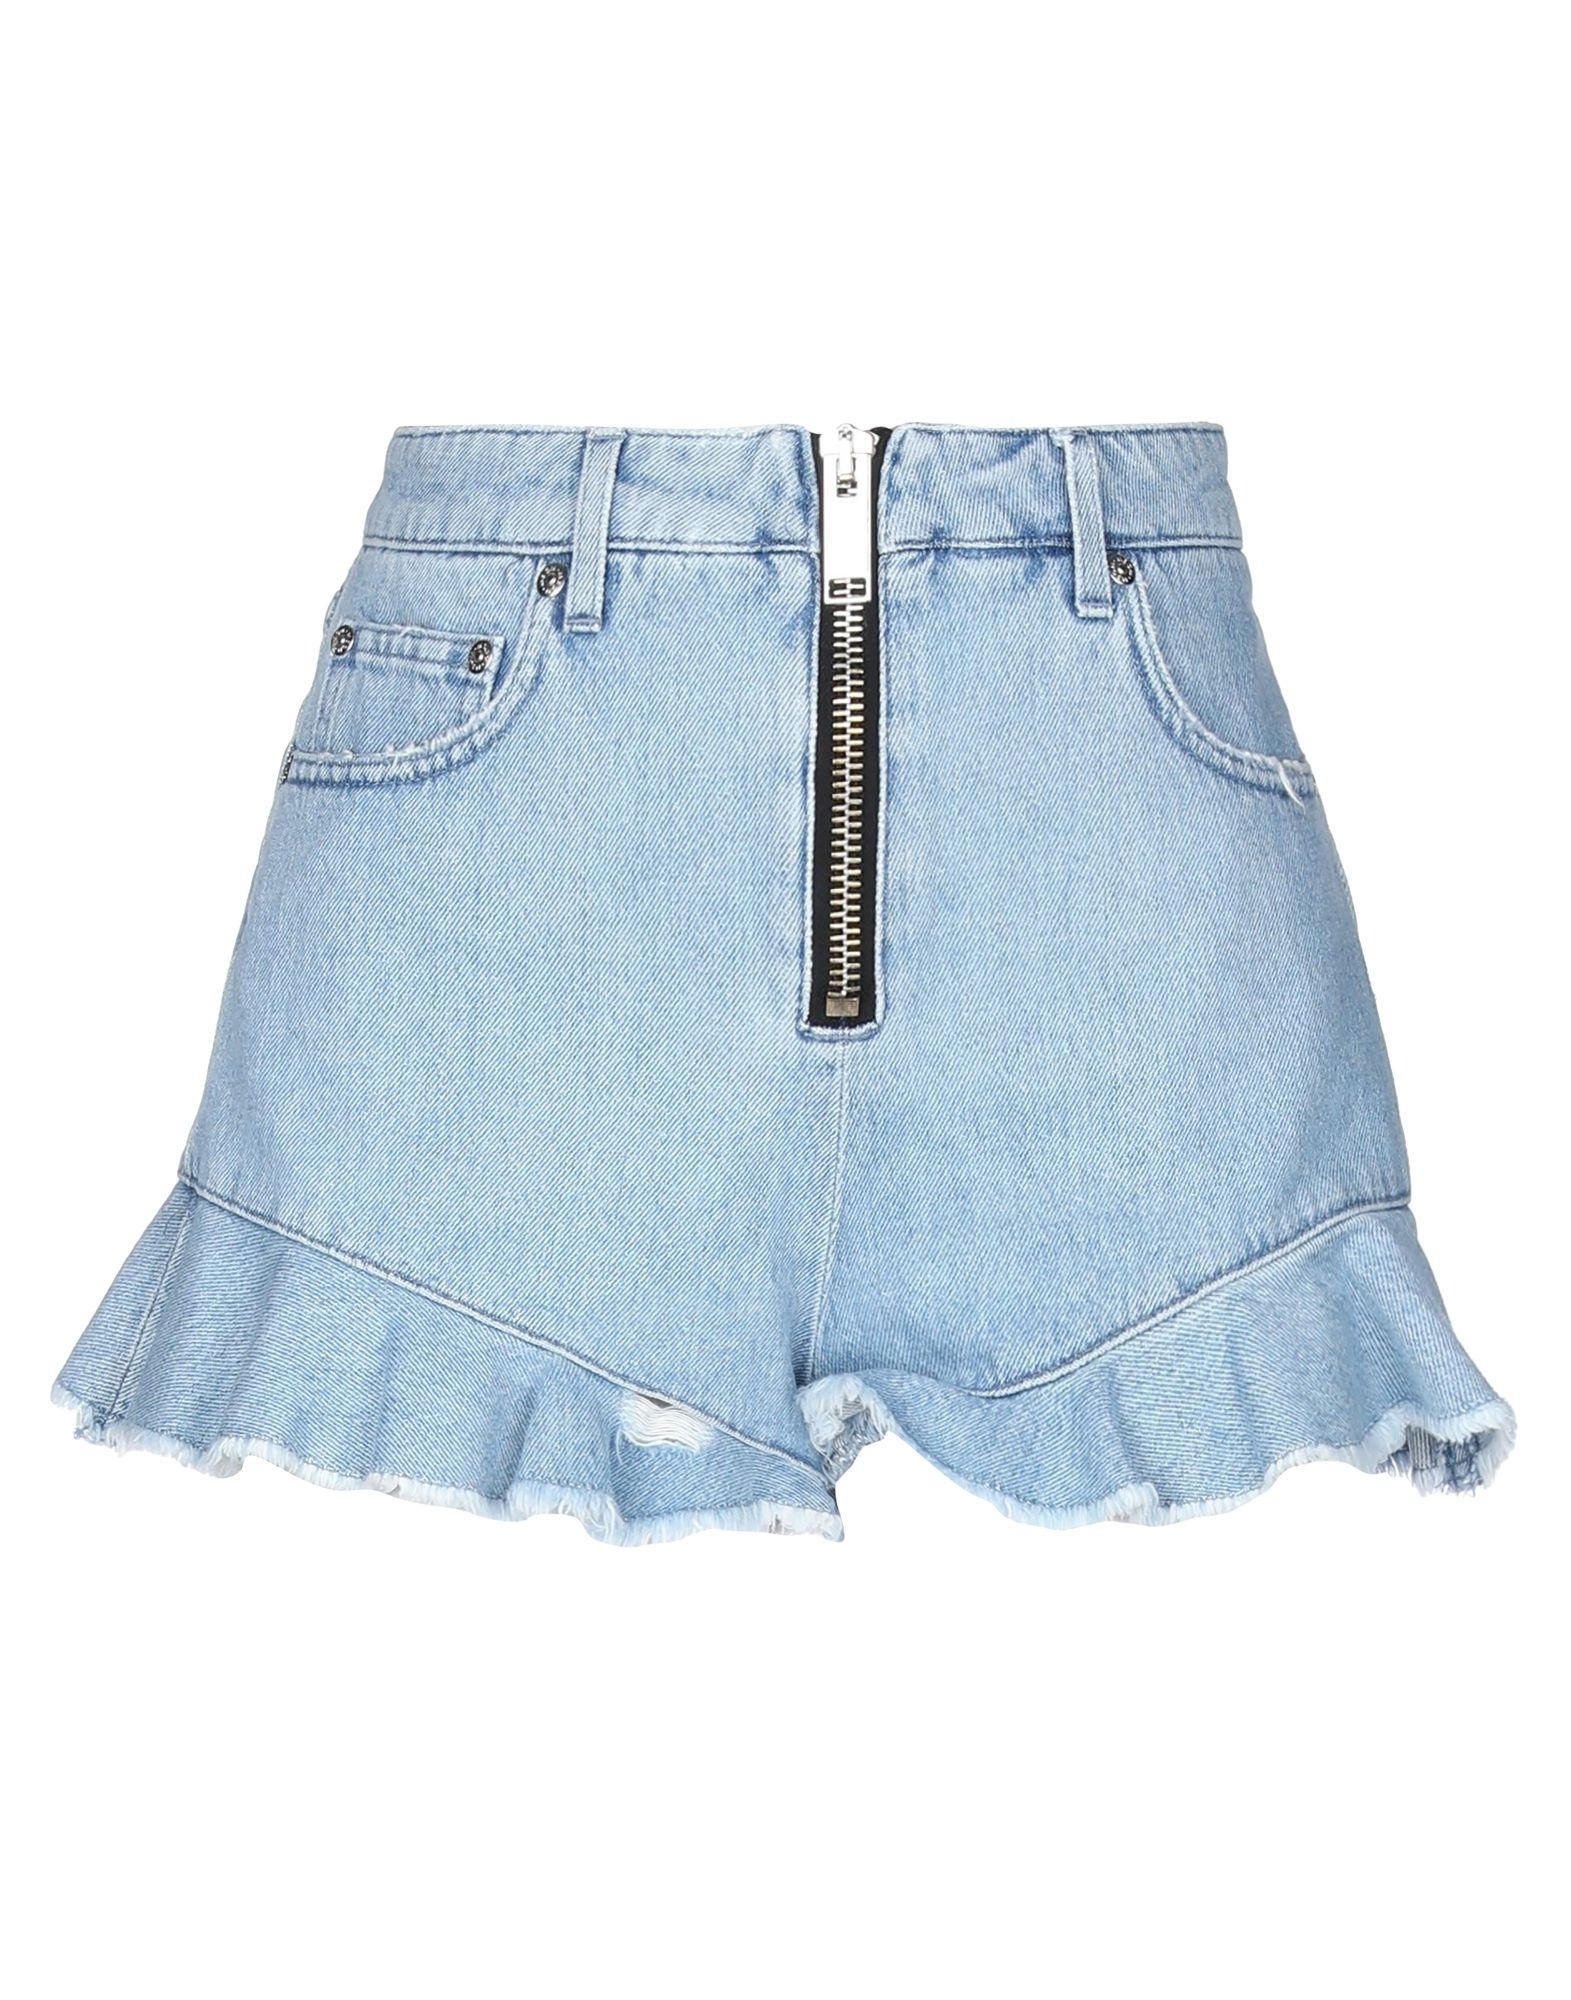 MSGM Denim shorts. denim, logo, solid color, dark wash, high waisted, front closure, zip, multipockets, large sized. 65% Polyester, 35% Cotton